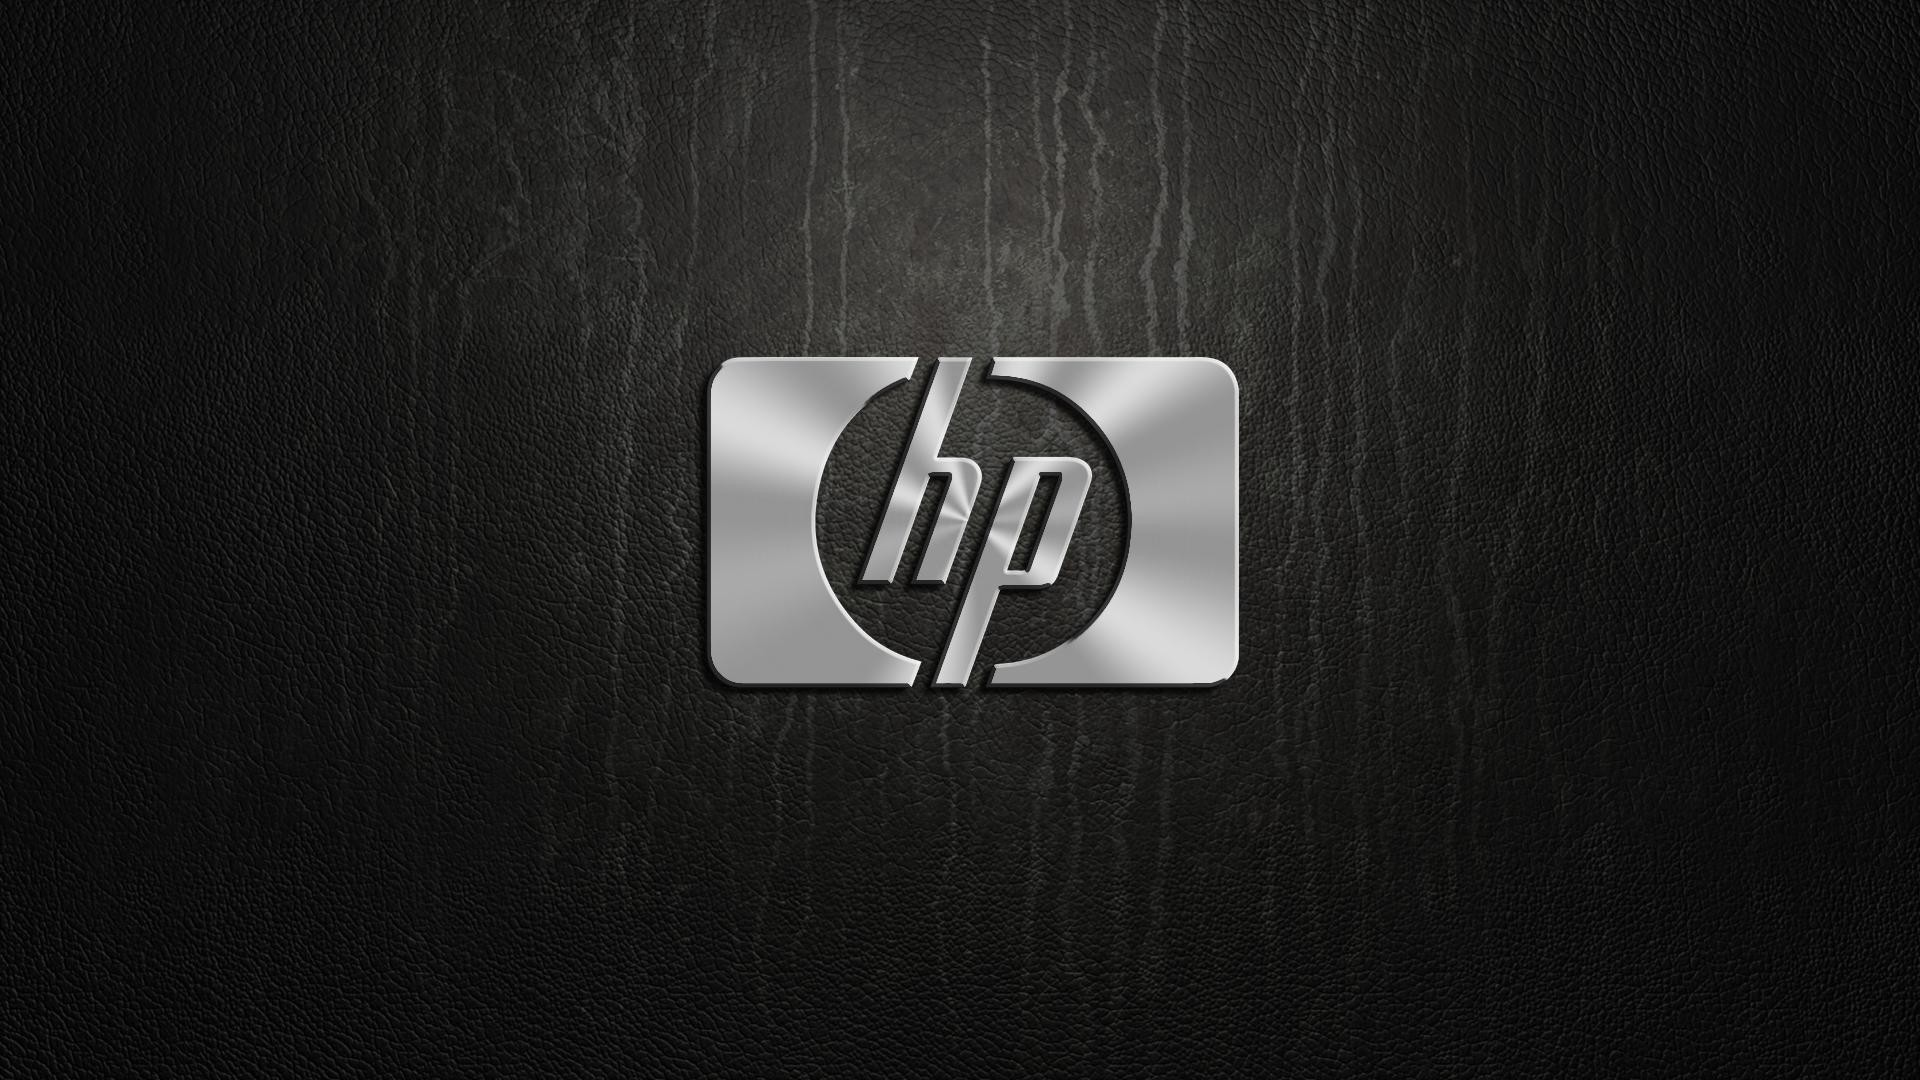 1920x1080 hp logo hd wallpapers image hd wallpapers image download